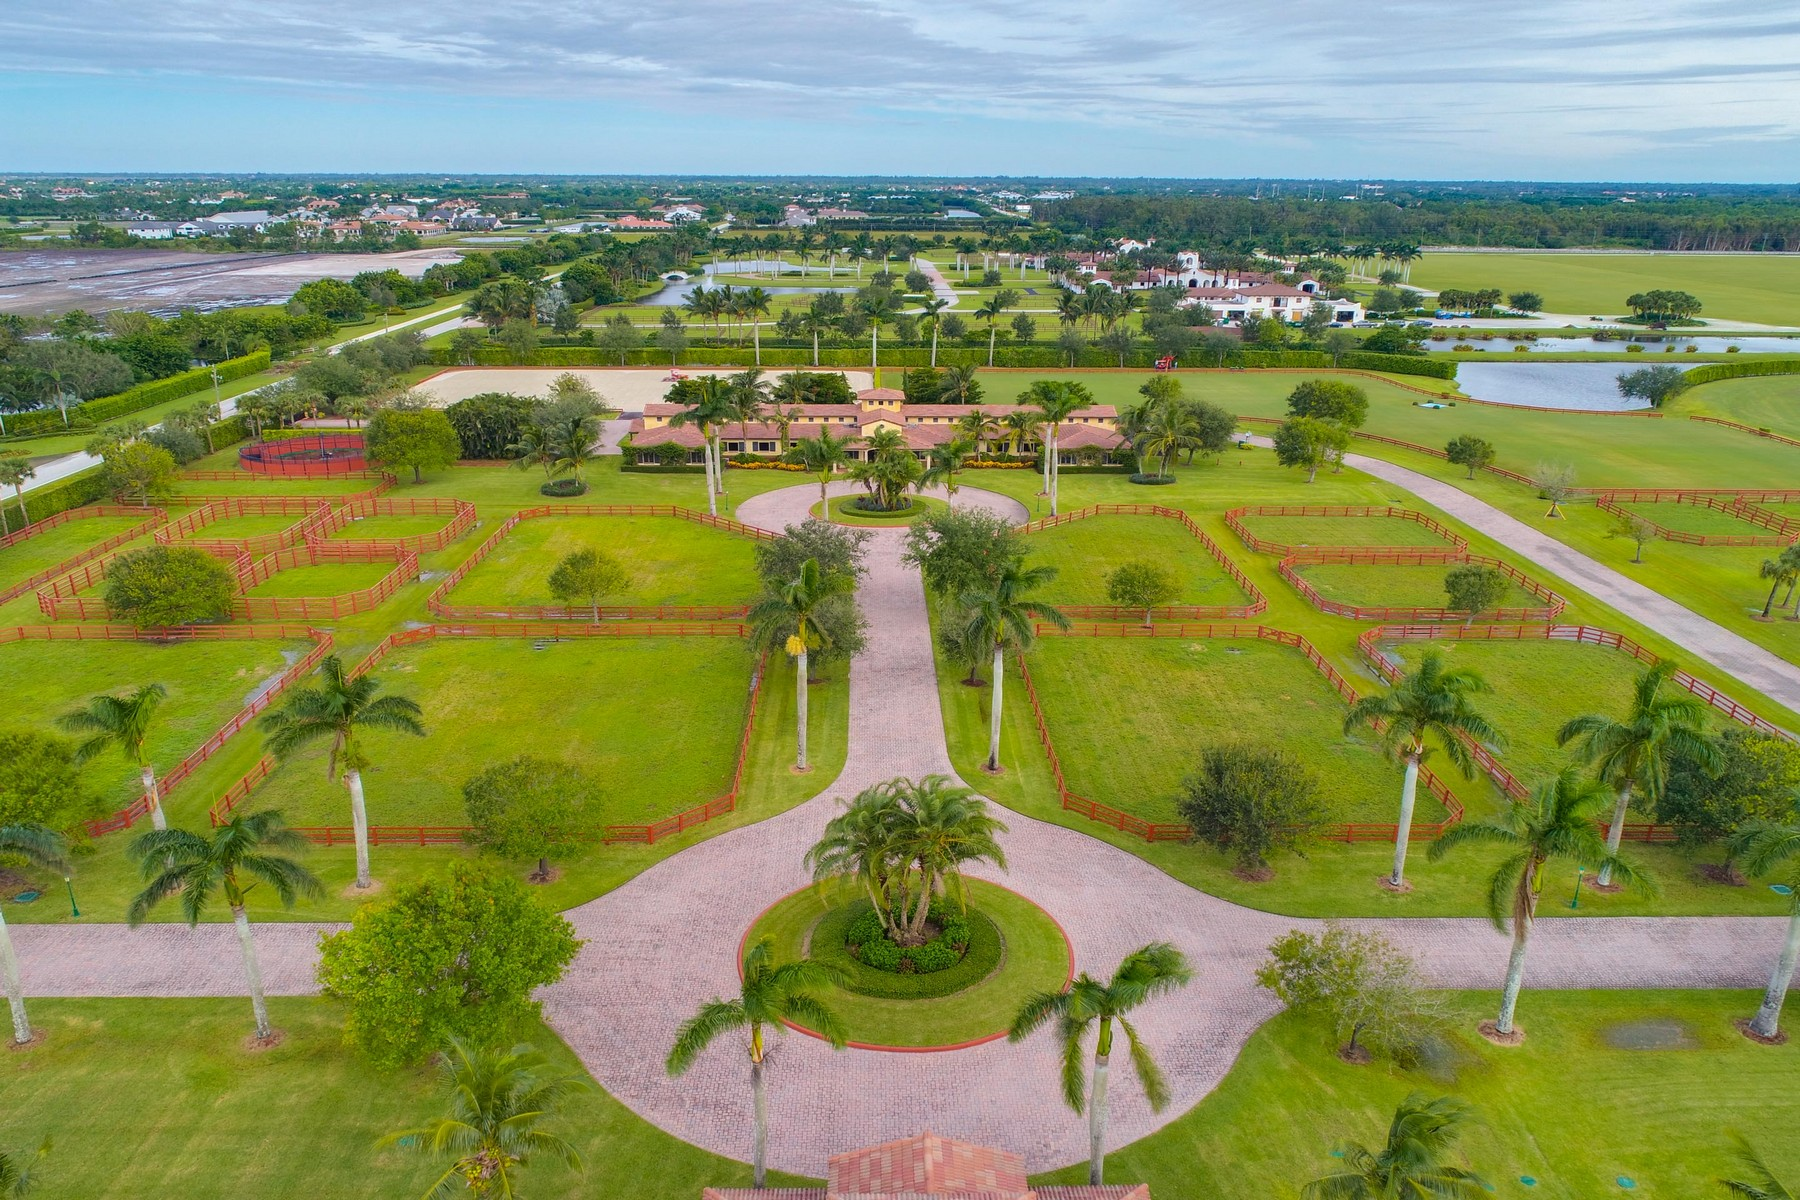 Farm / Ranch / Plantation for Sale at 4370 S Road 4370 S Road Wellington, Florida 33414 United States